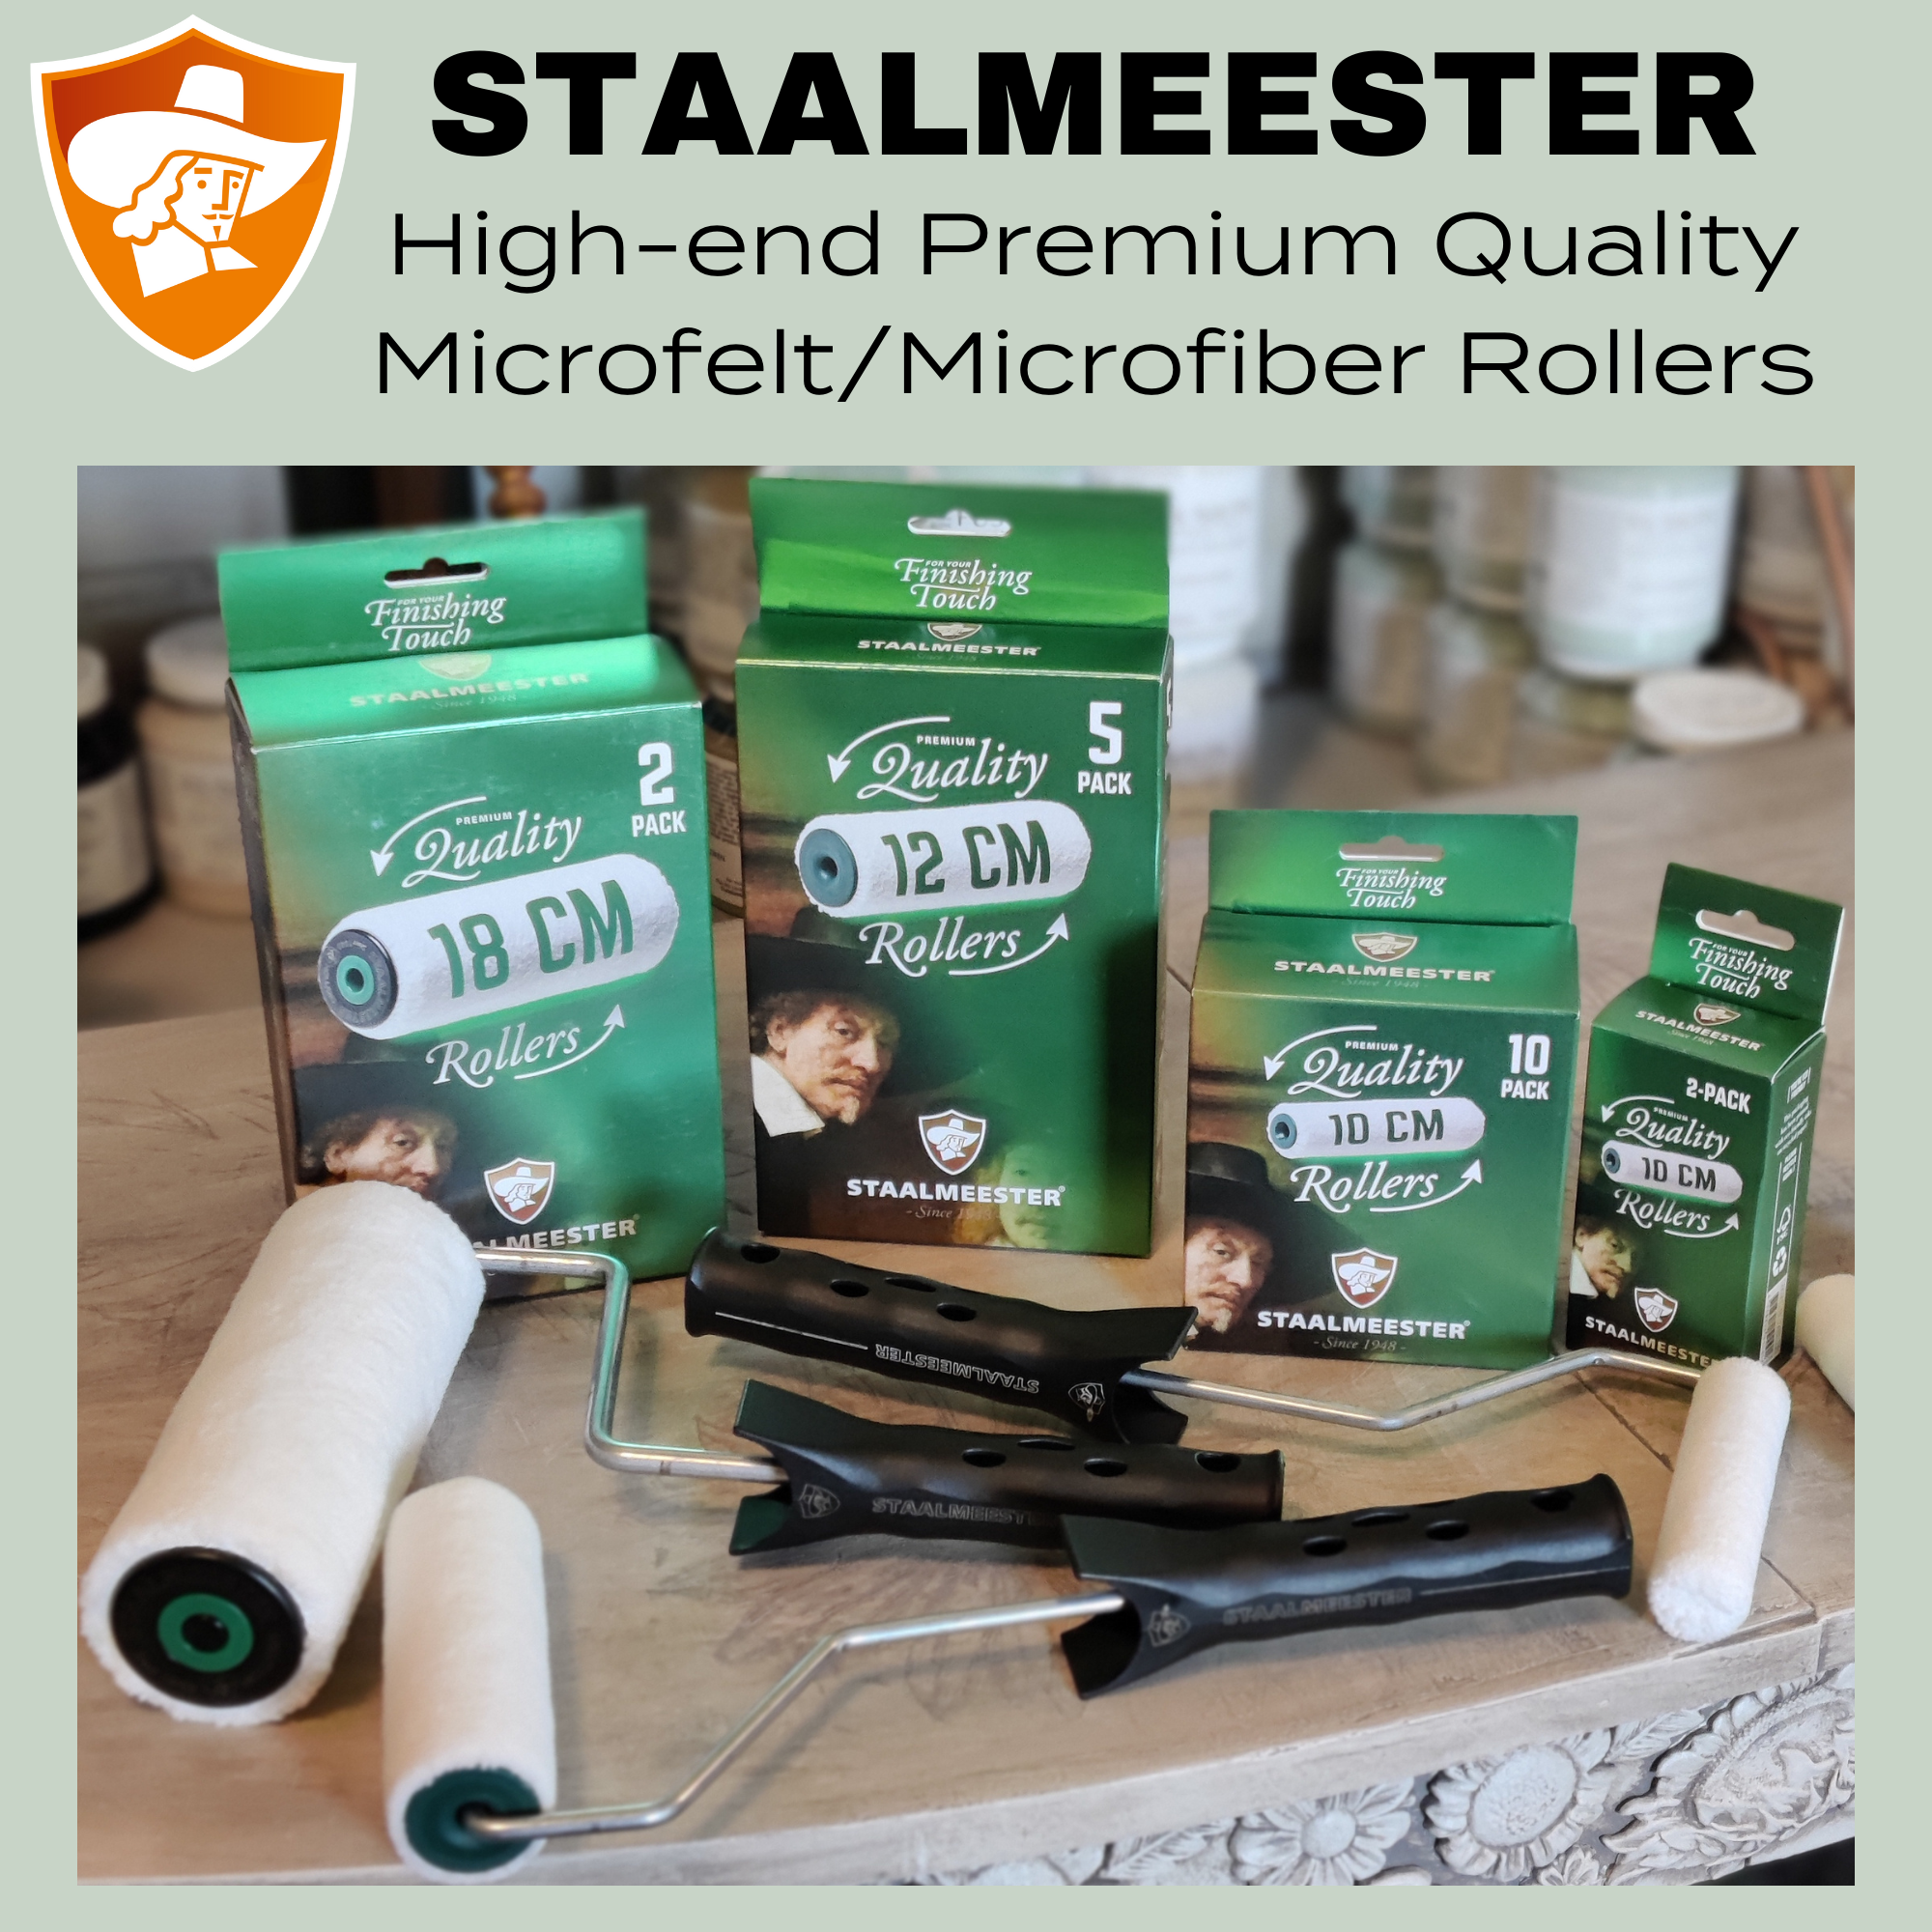 Staalmeester High-end Premium Quality Microfelt and Microfiber Paint Roller